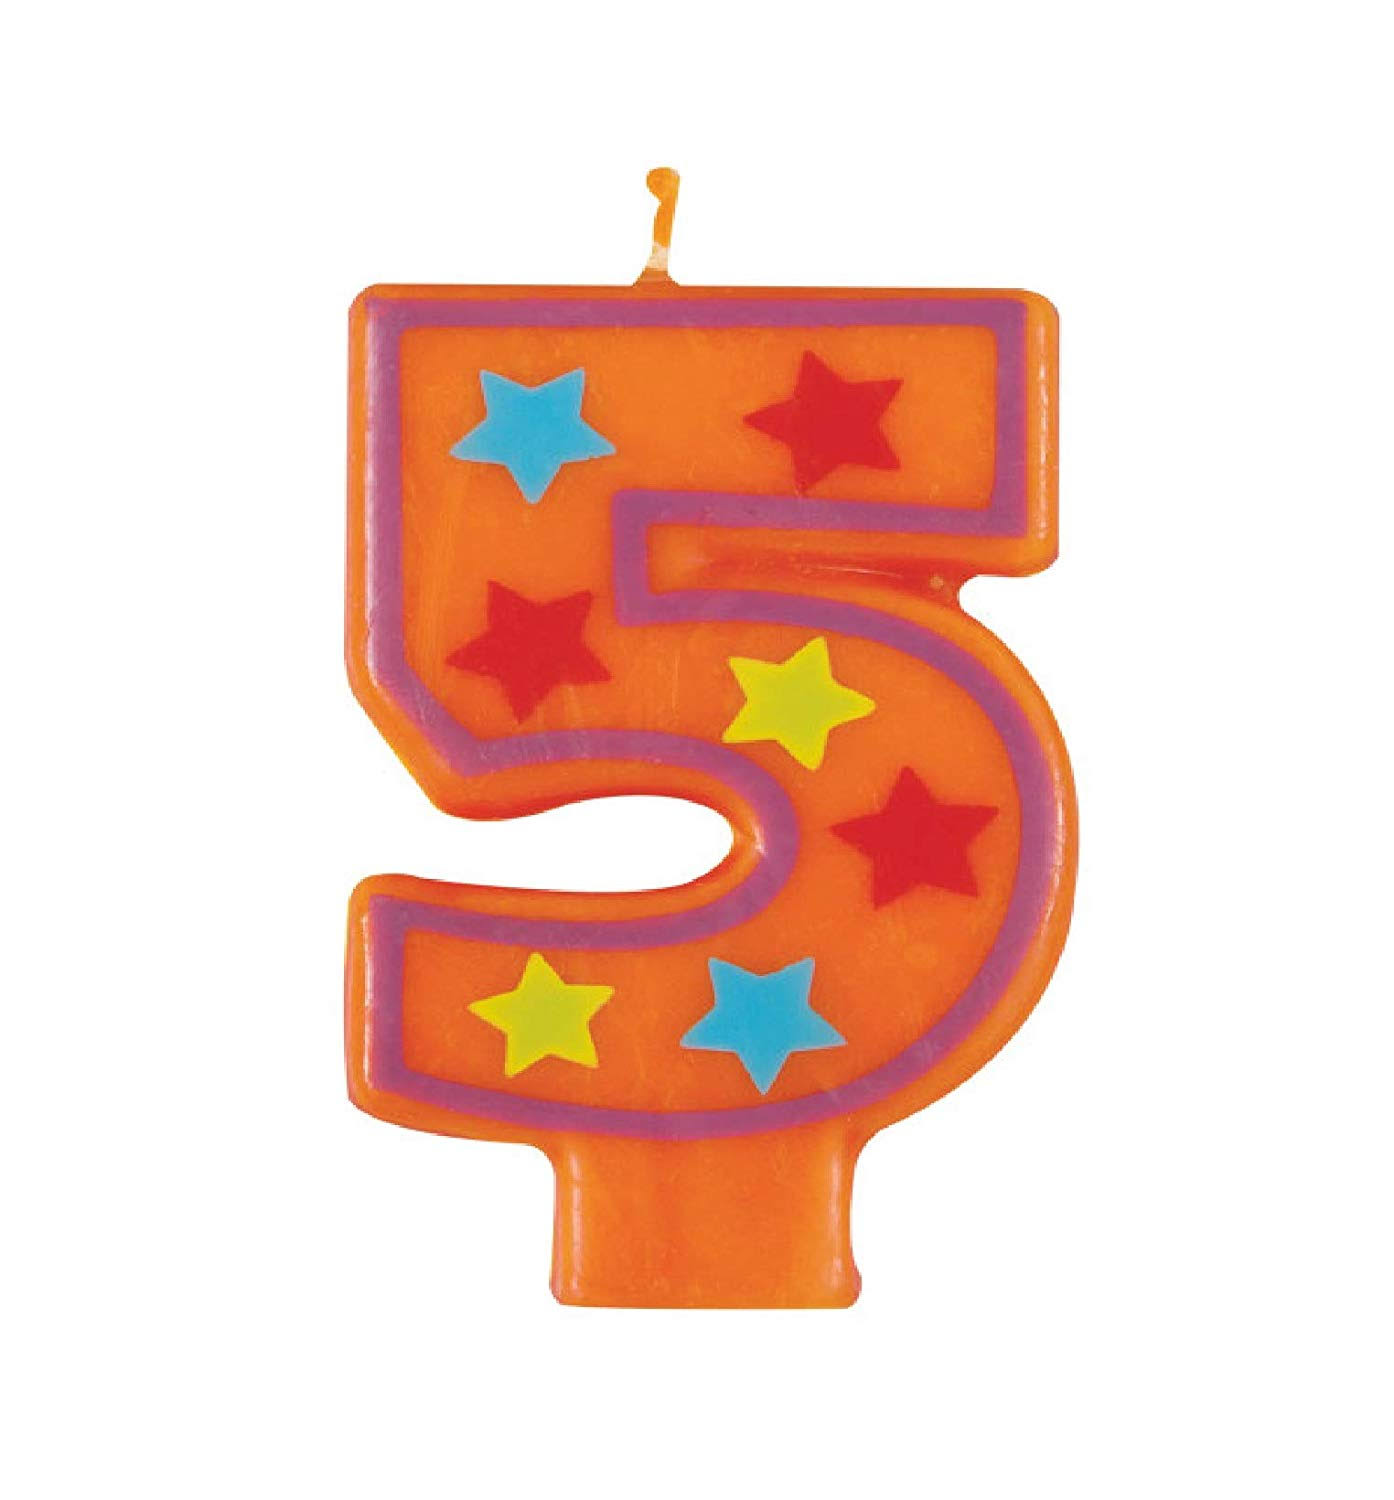 Unique Industries Decorative Birthday Number 5 Candle - Multicolor